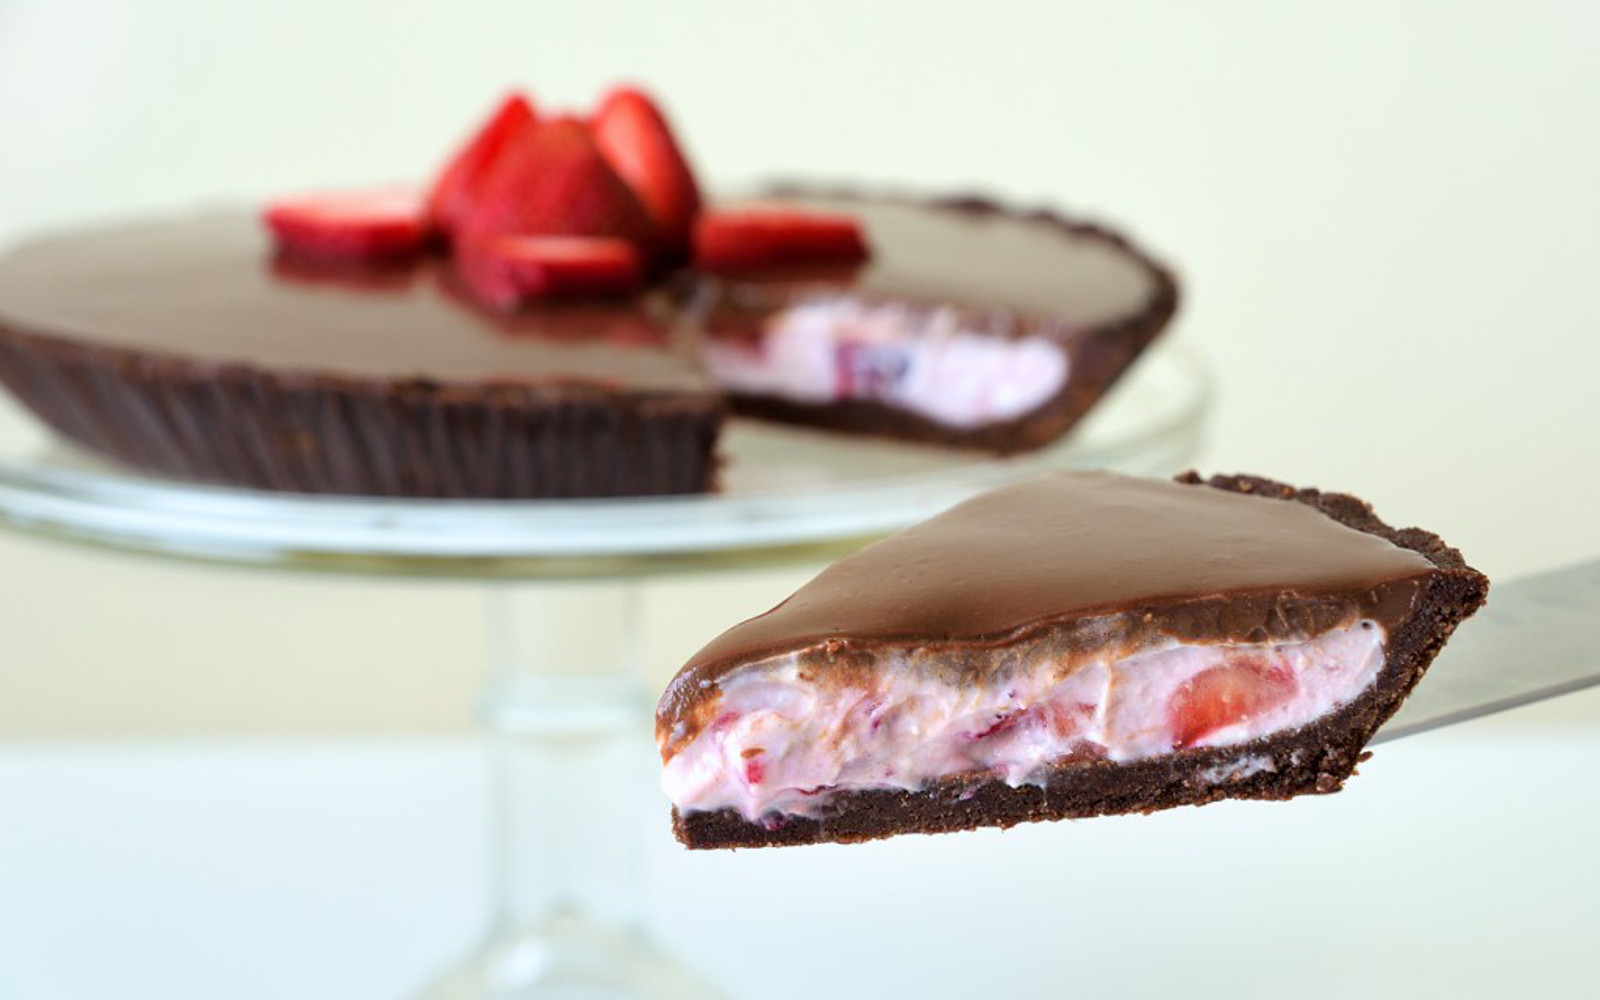 Vegan Grain-Free No-Bake Chocolate-Covered Strawberry Pie